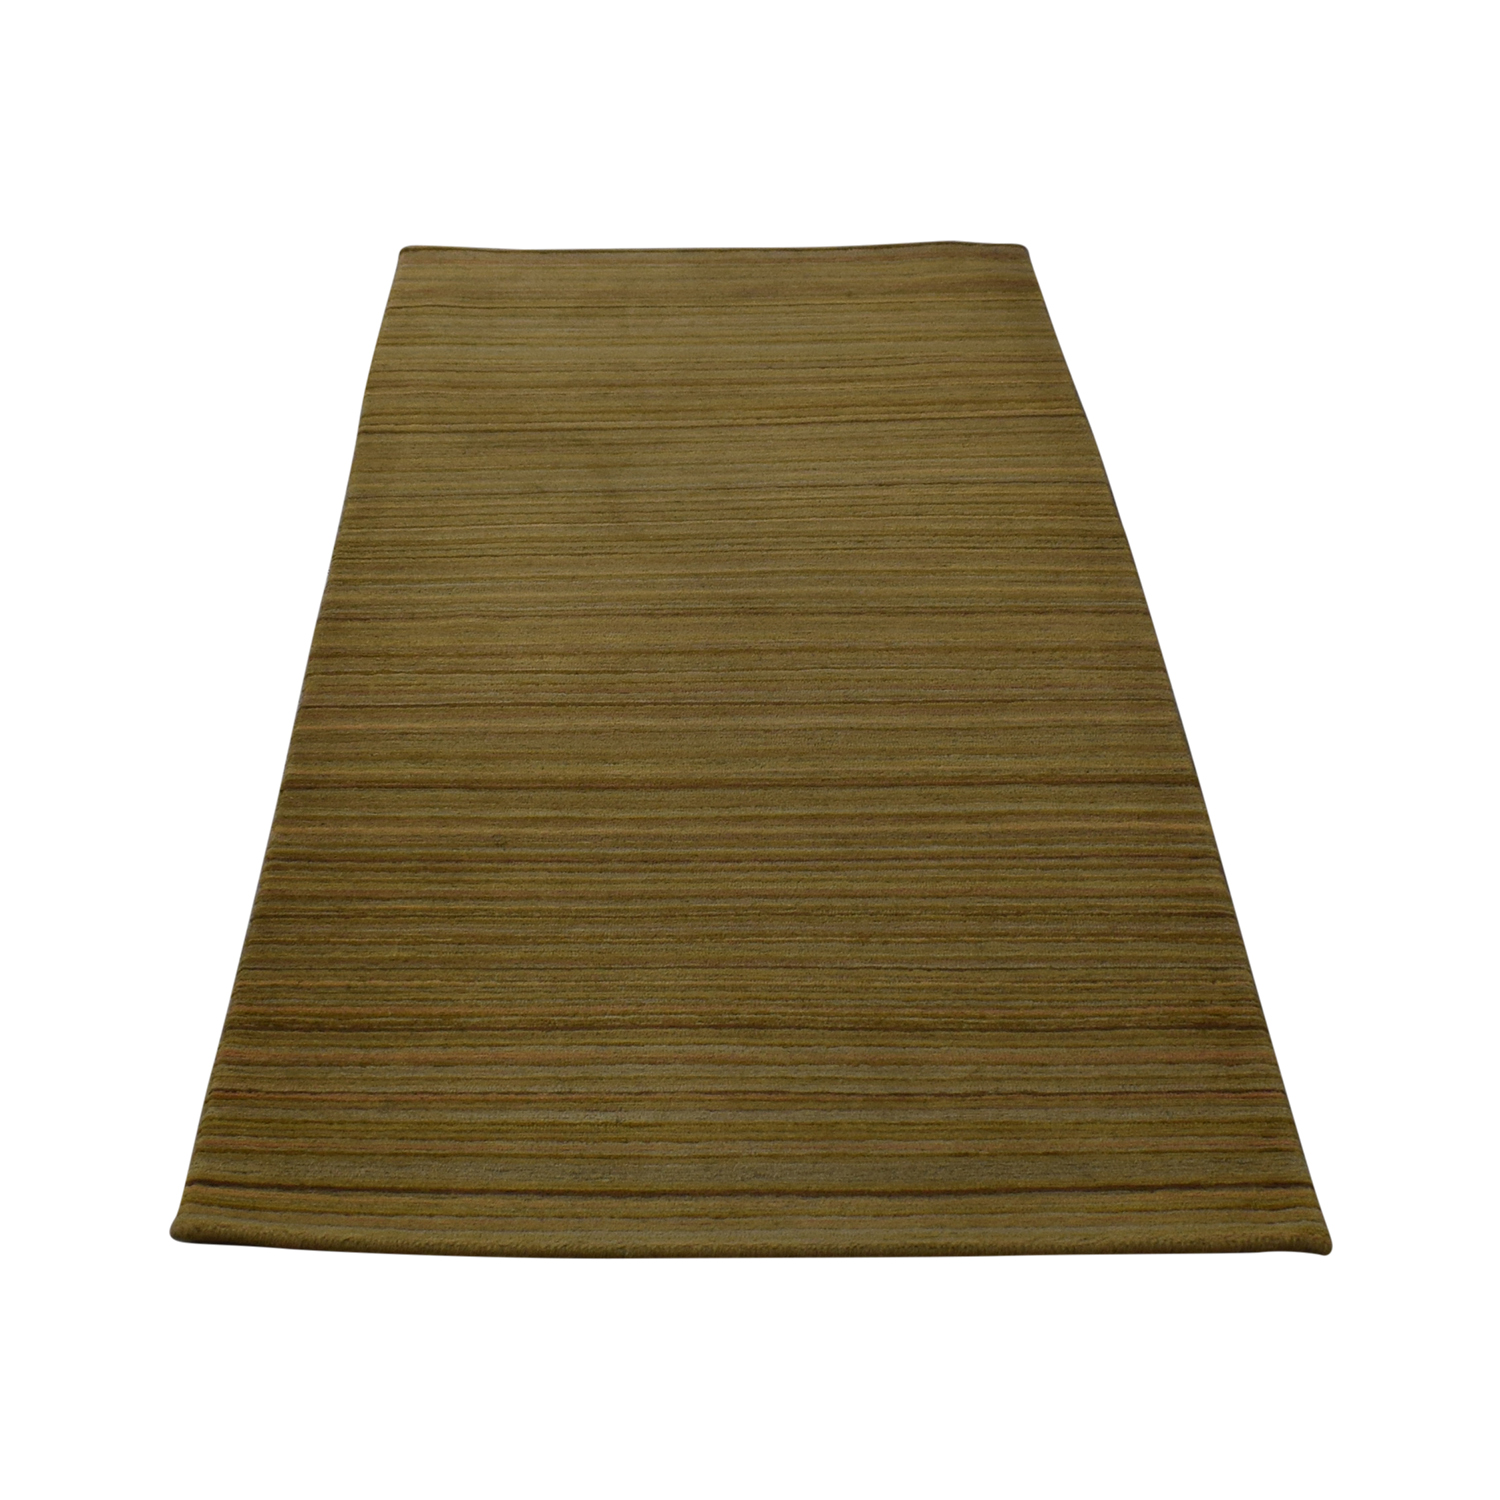 ABC Carpet & Home ABC Carpet & Home Mustard Yellow Striped Rug Rugs